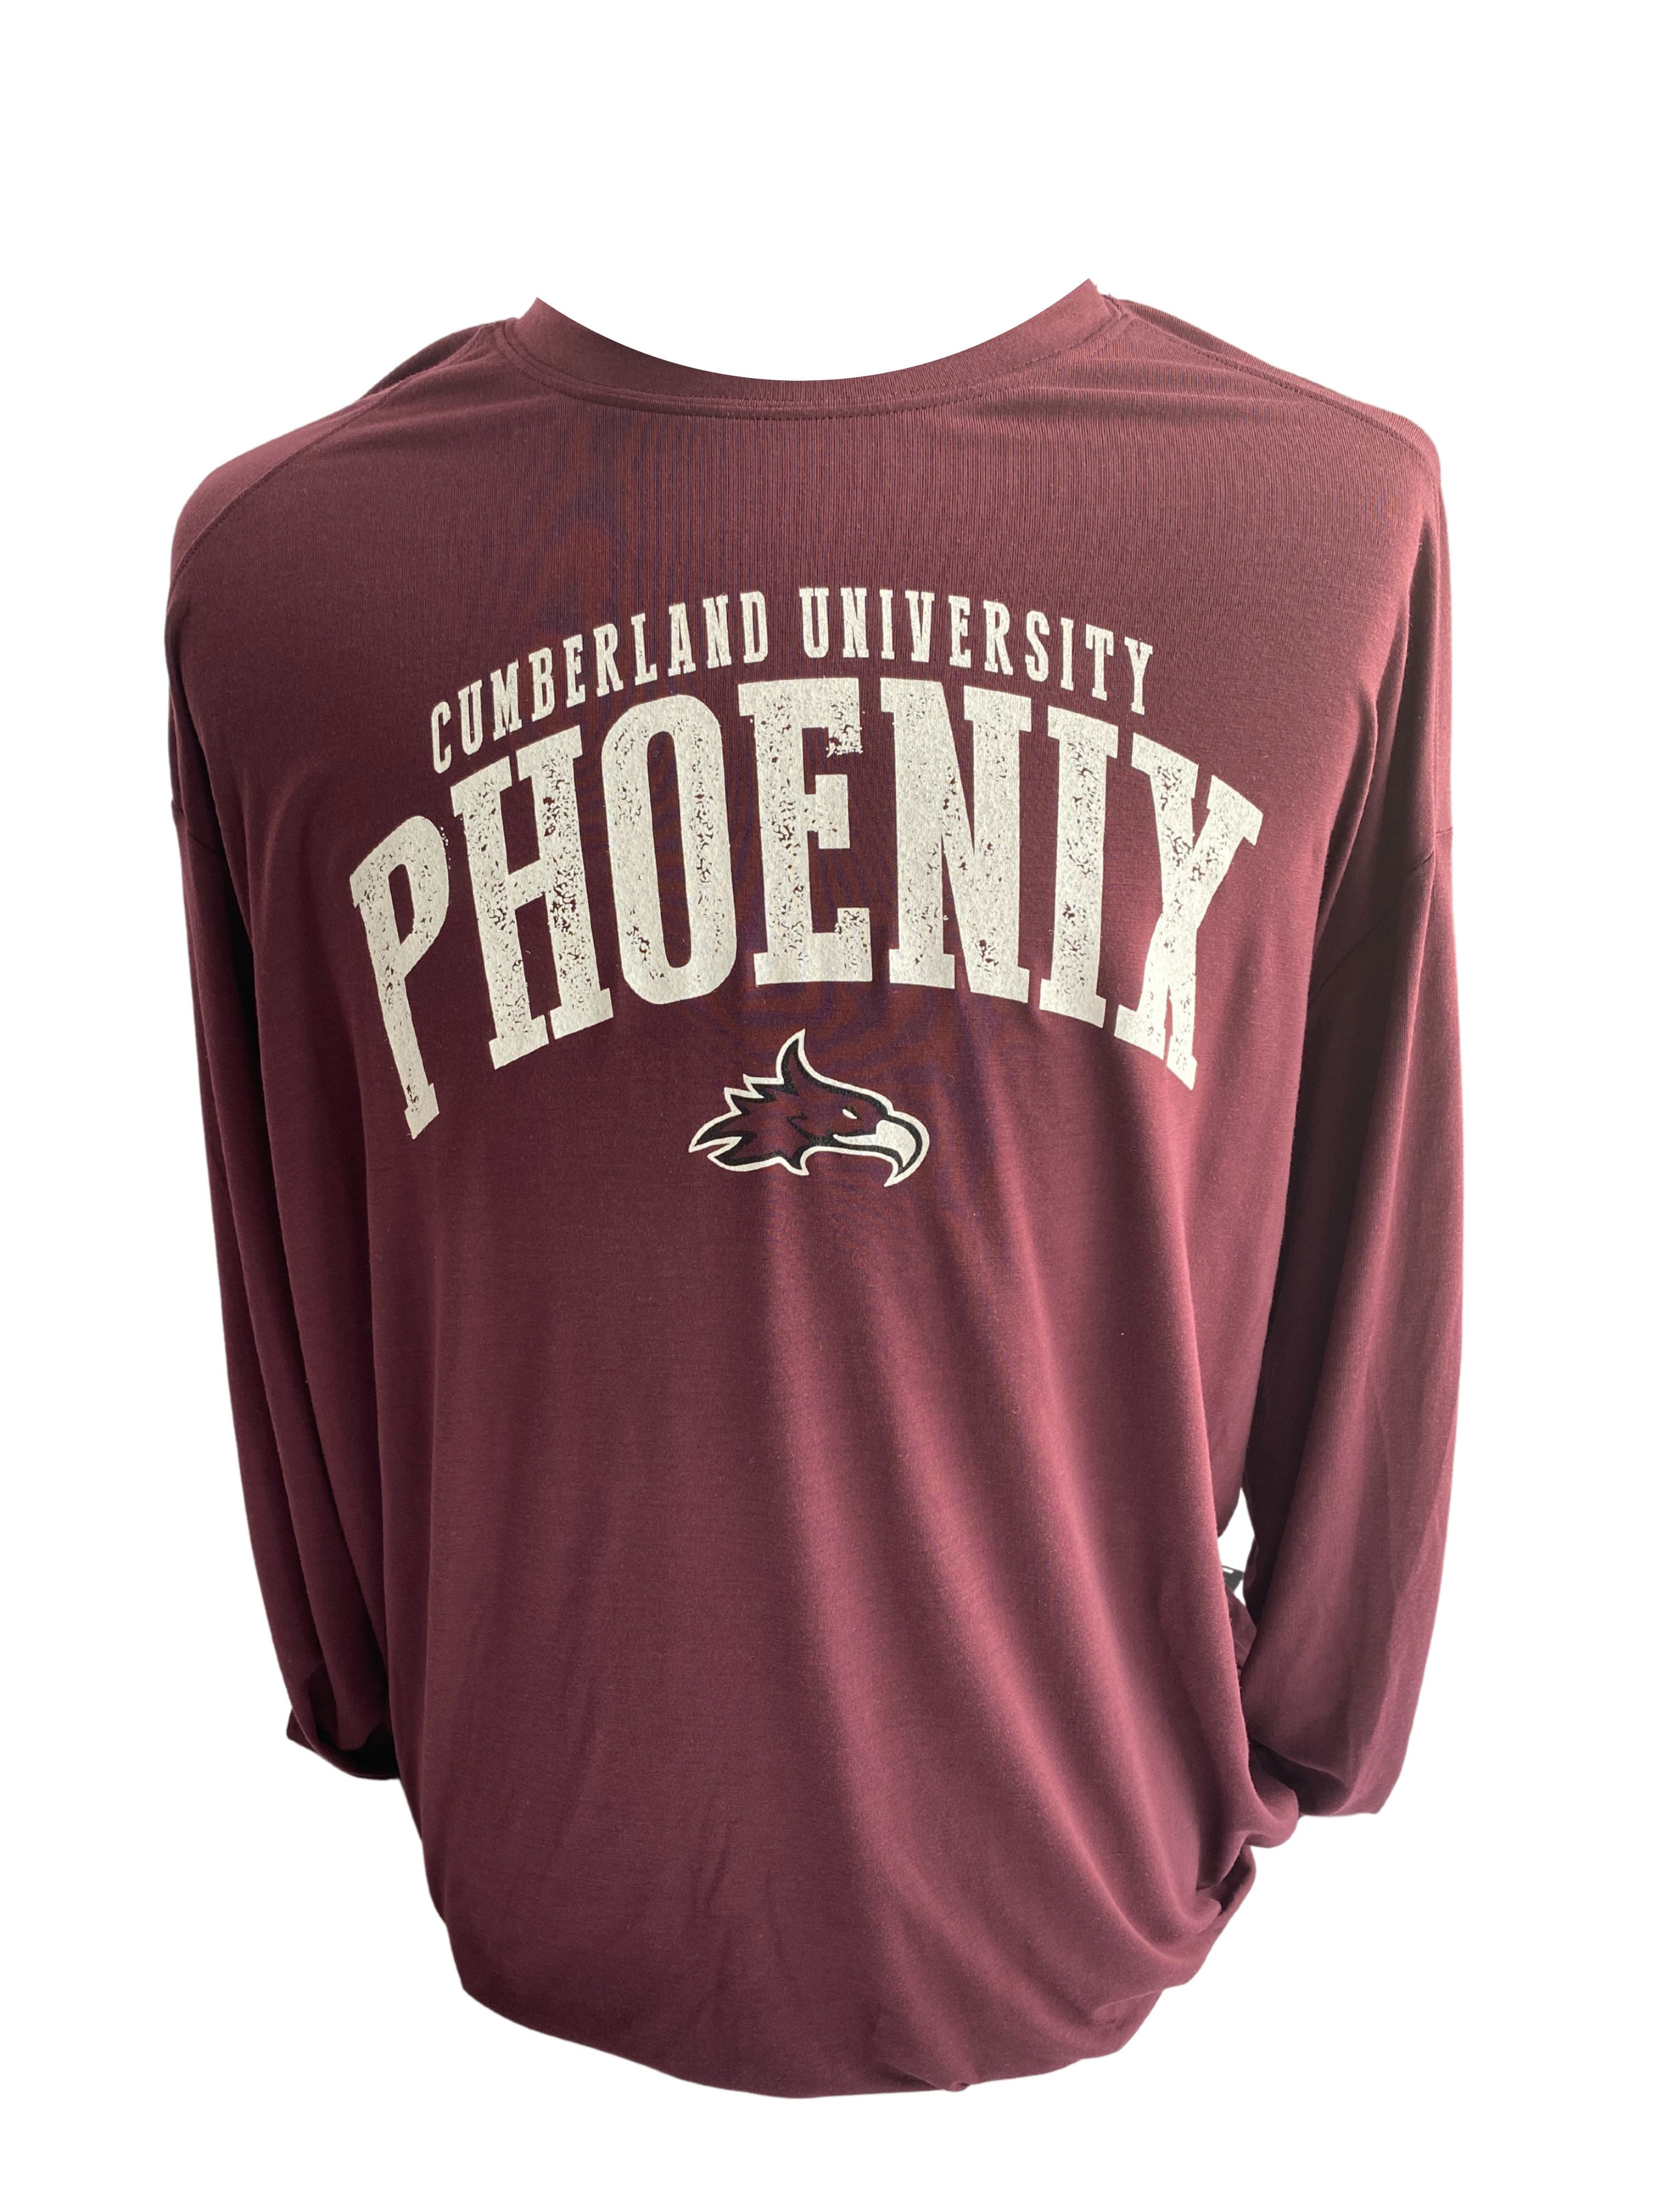 Cumberland University Phoenix B-tech Long Sleeve Shirt